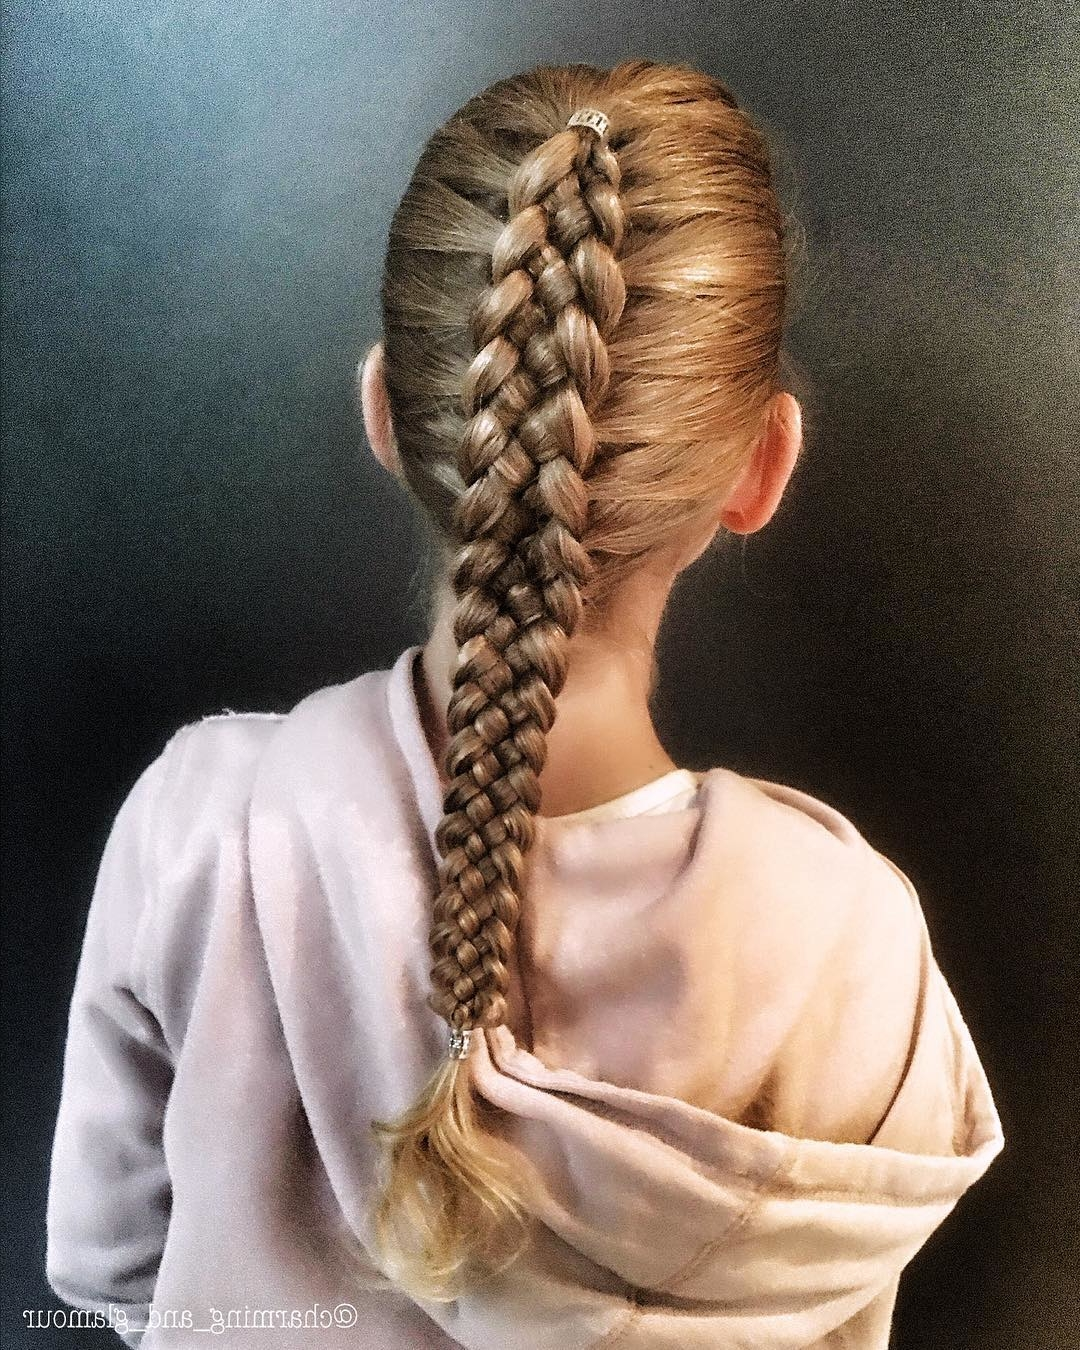 25 Easy Wacky Hairstyles for School Girl - Short Pixie Cuts